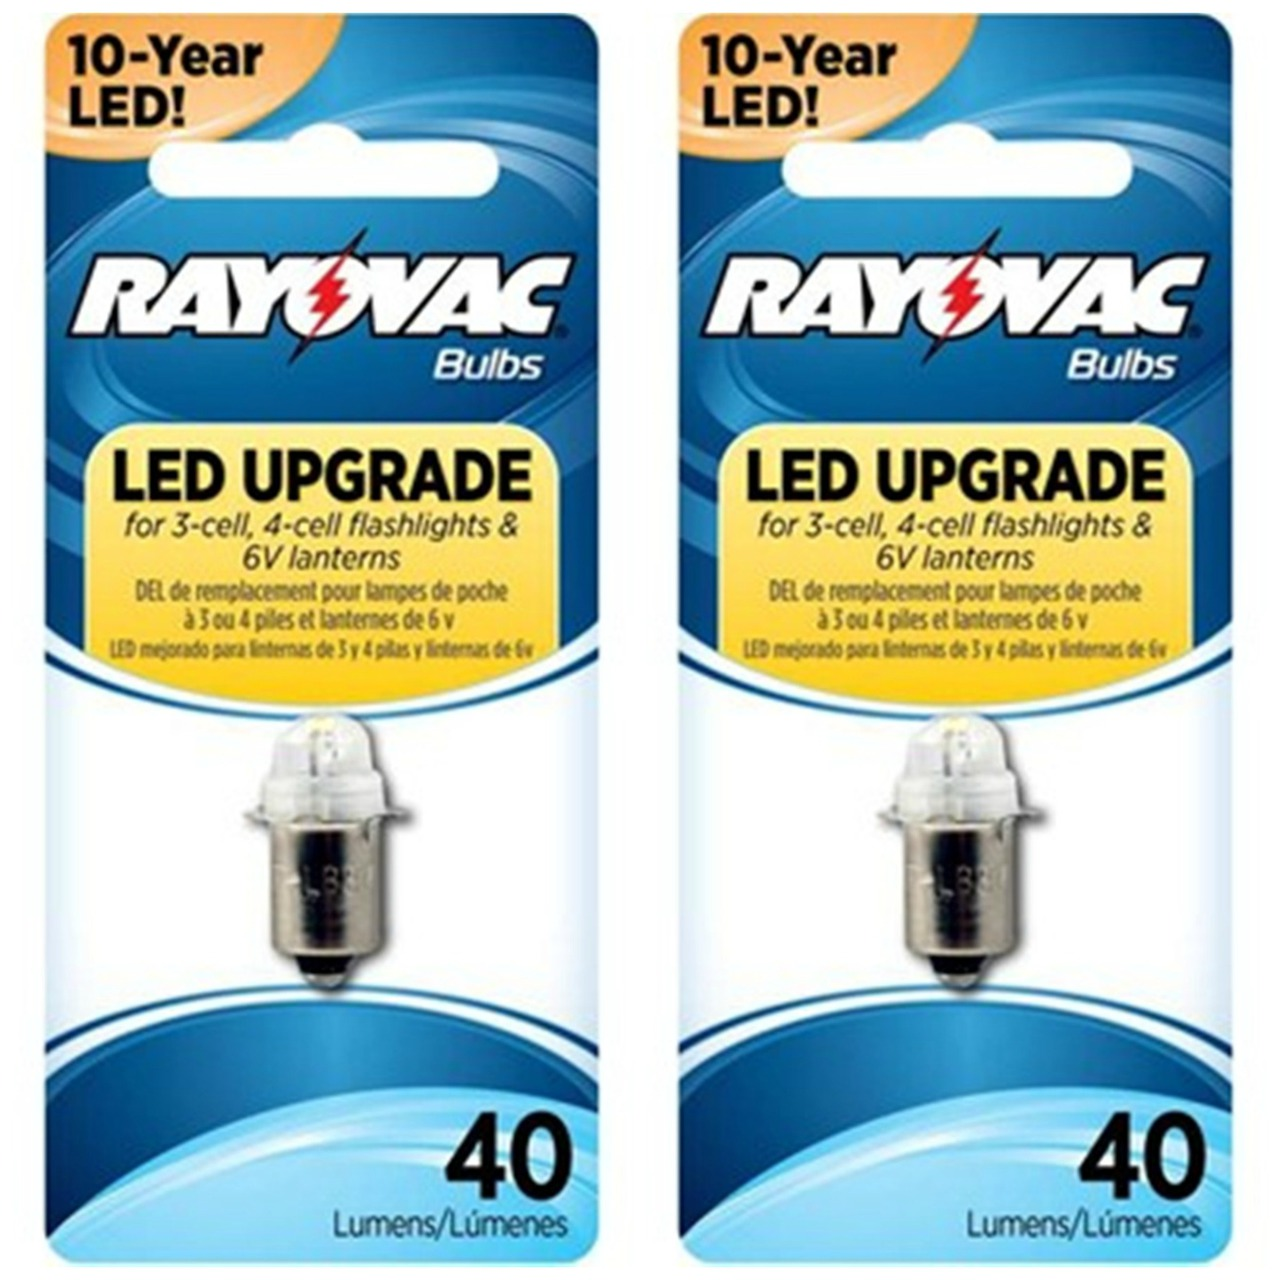 Rayovac LED Upgrade Bulb for 3-Cell, 4-Cell Flashlights and Lanterns 4V6VLED -2 Pack + FREE SHIPPING!